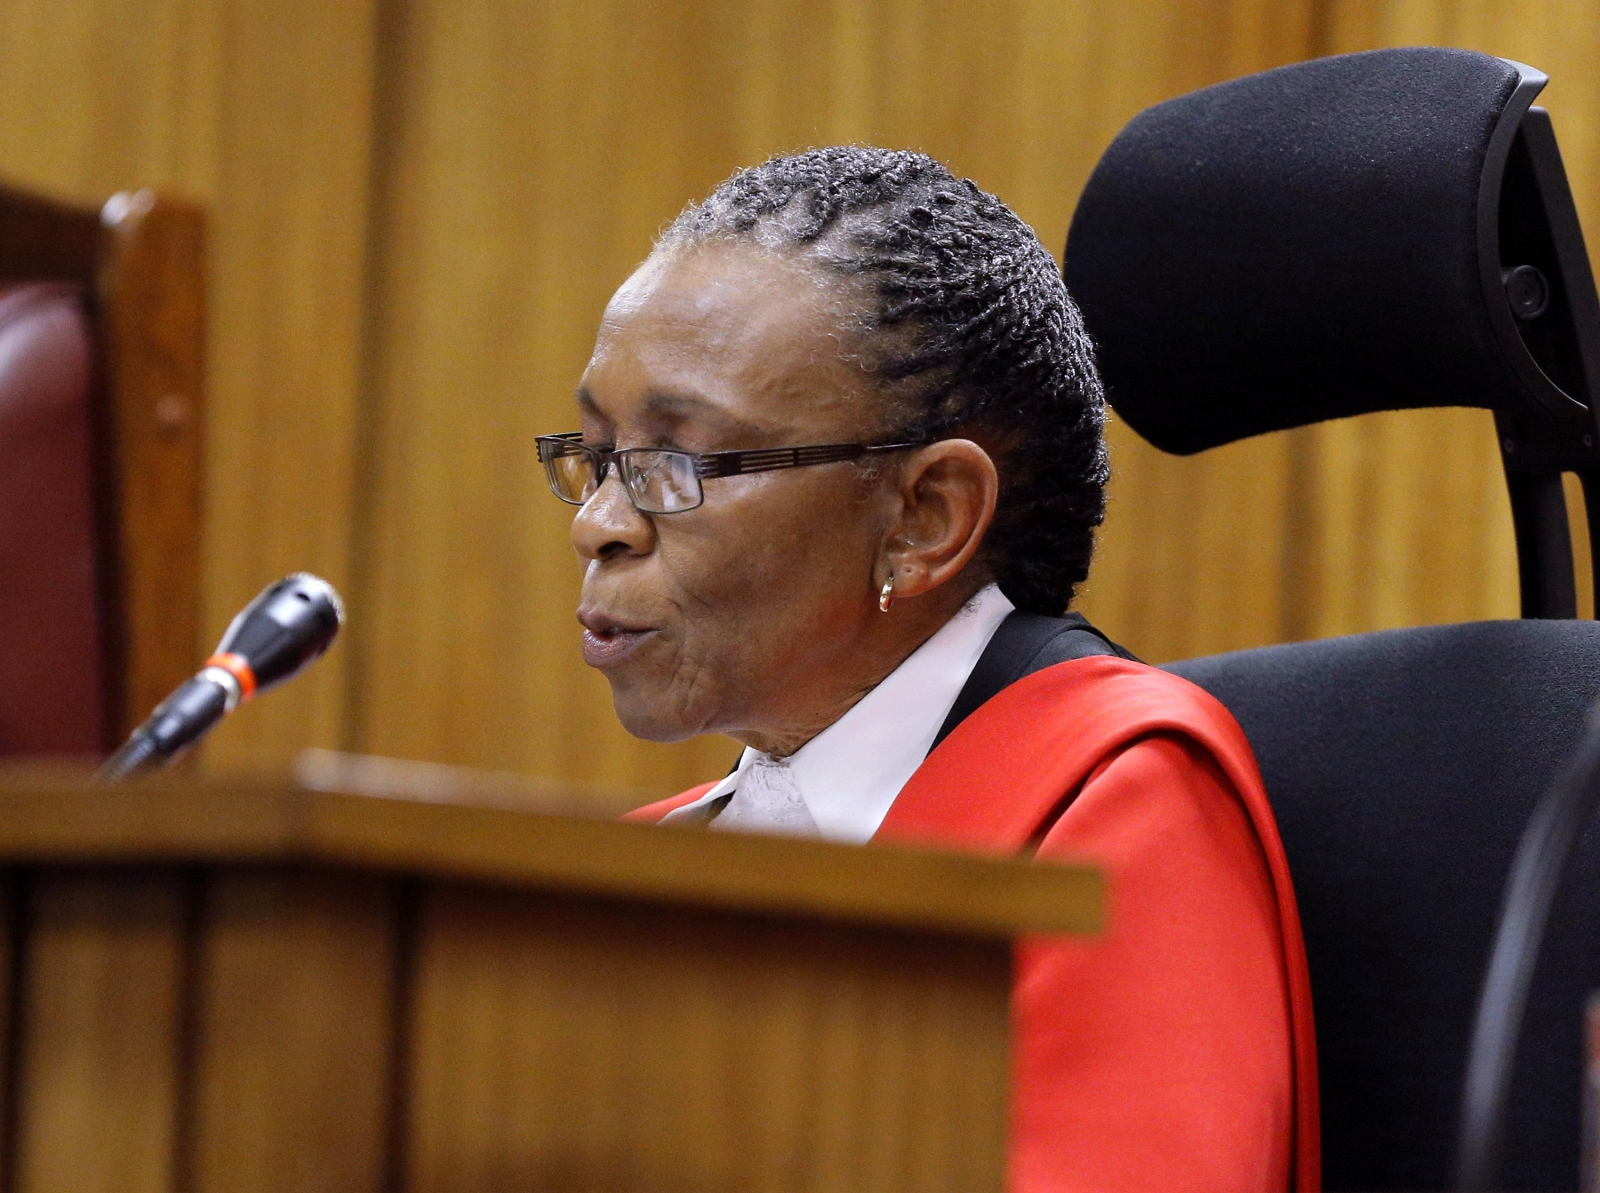 Judge Thokozile Masipa is under police protection from feared police unit following her Oscar Pistorius verdict